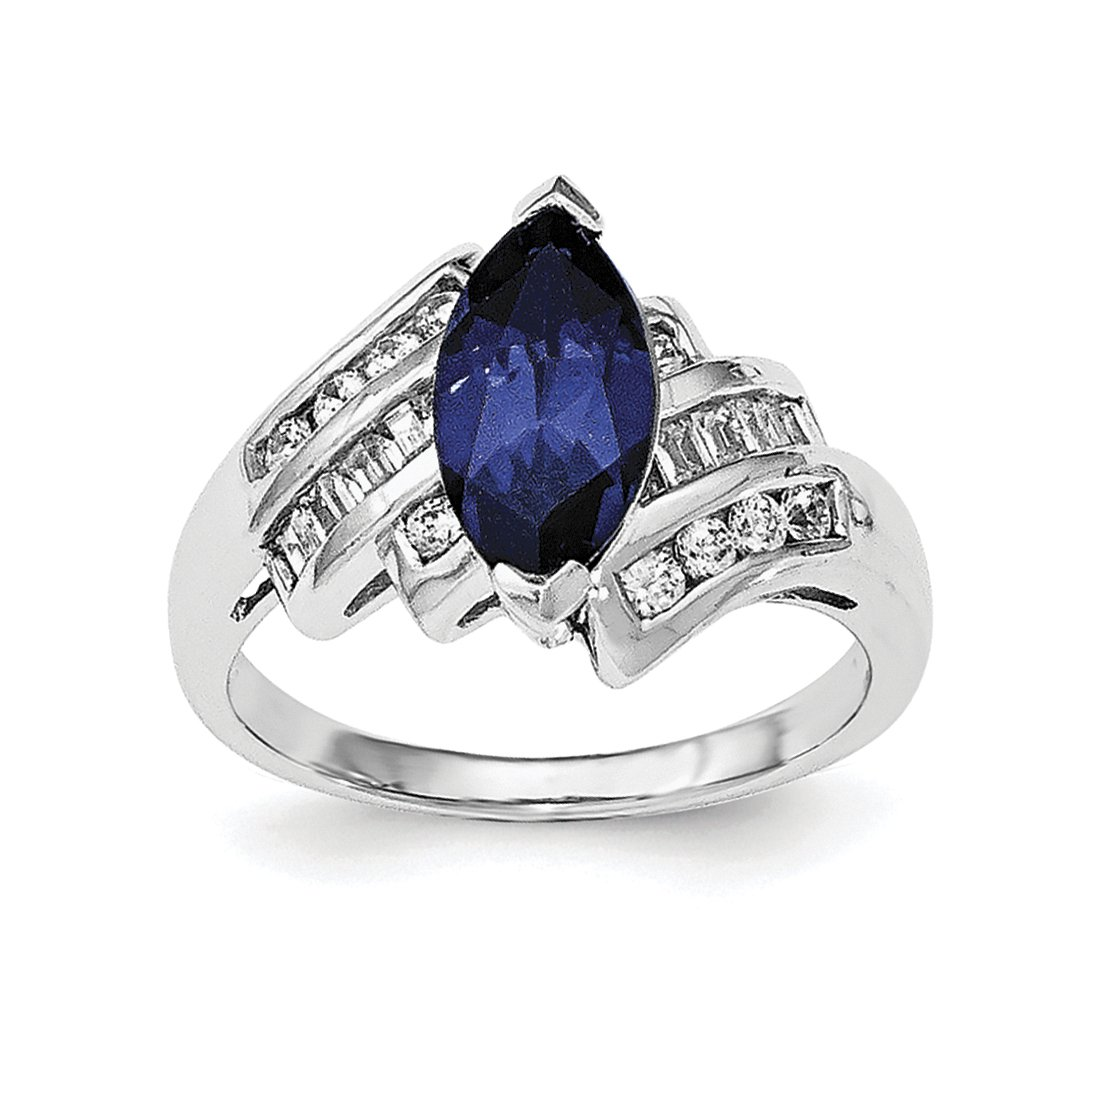 ICE CARATS 925 Sterling Silver Synthetic Blue Sapphire Cubic Zirconia Cz Marquise Band Ring Size 7.00 Gemstone Fine Jewelry Gift Set For Women Heart